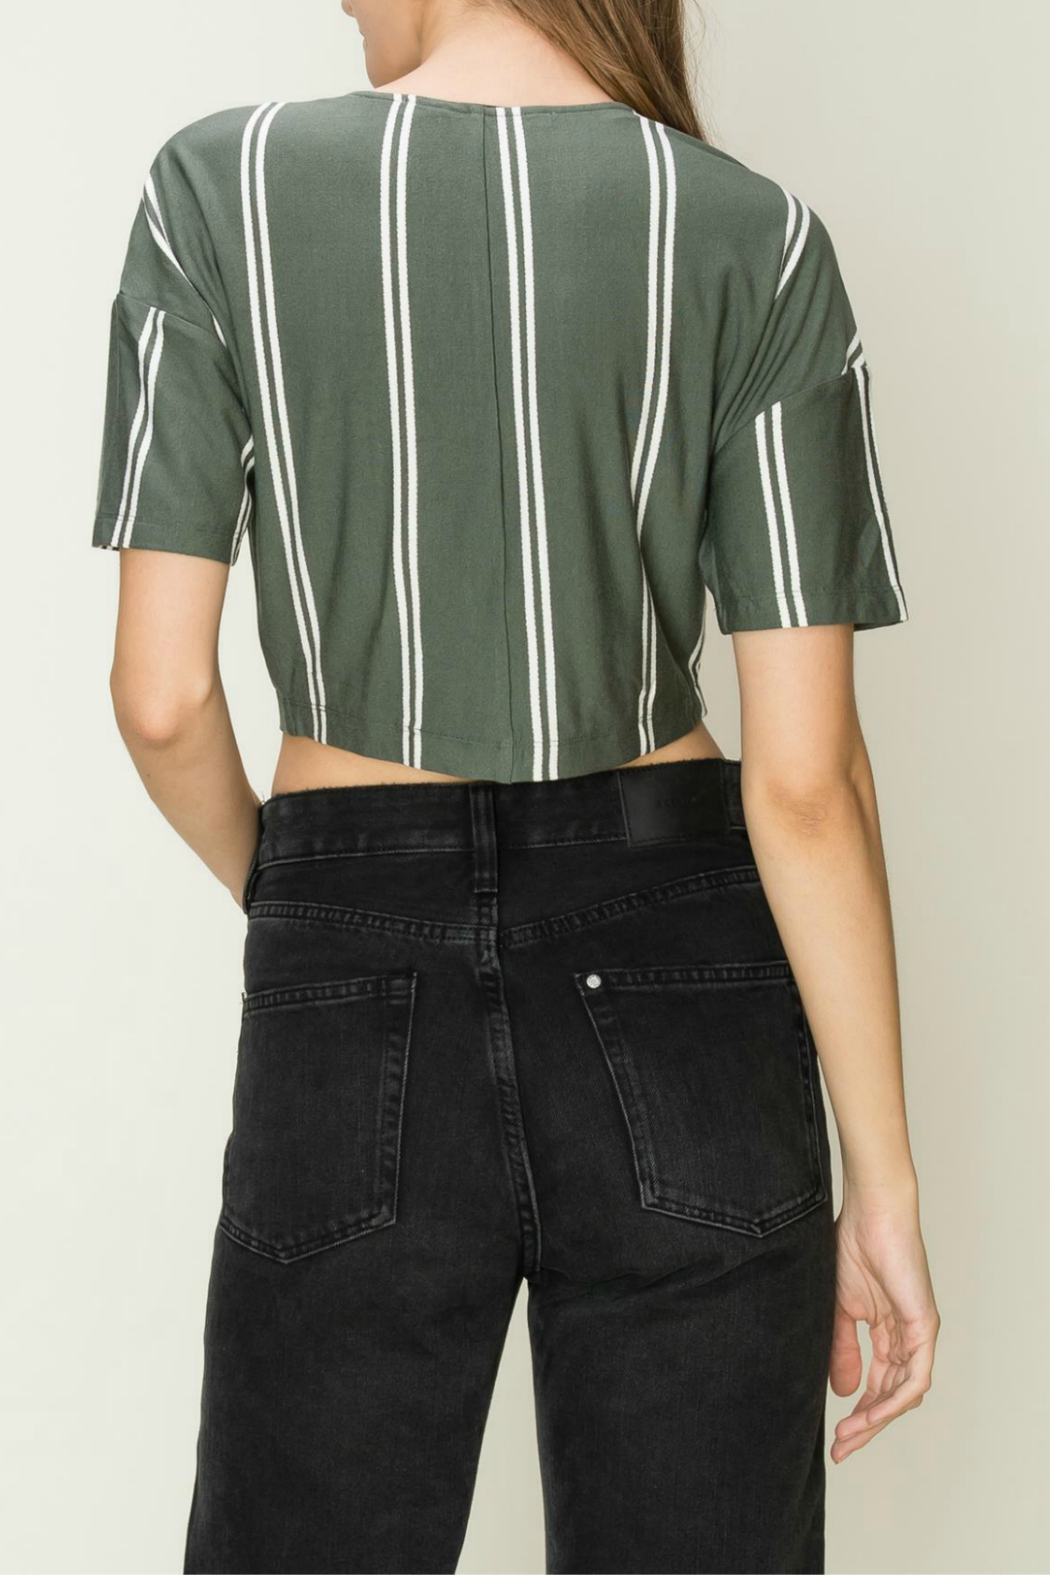 HYFVE Button front tie top - Side Cropped Image